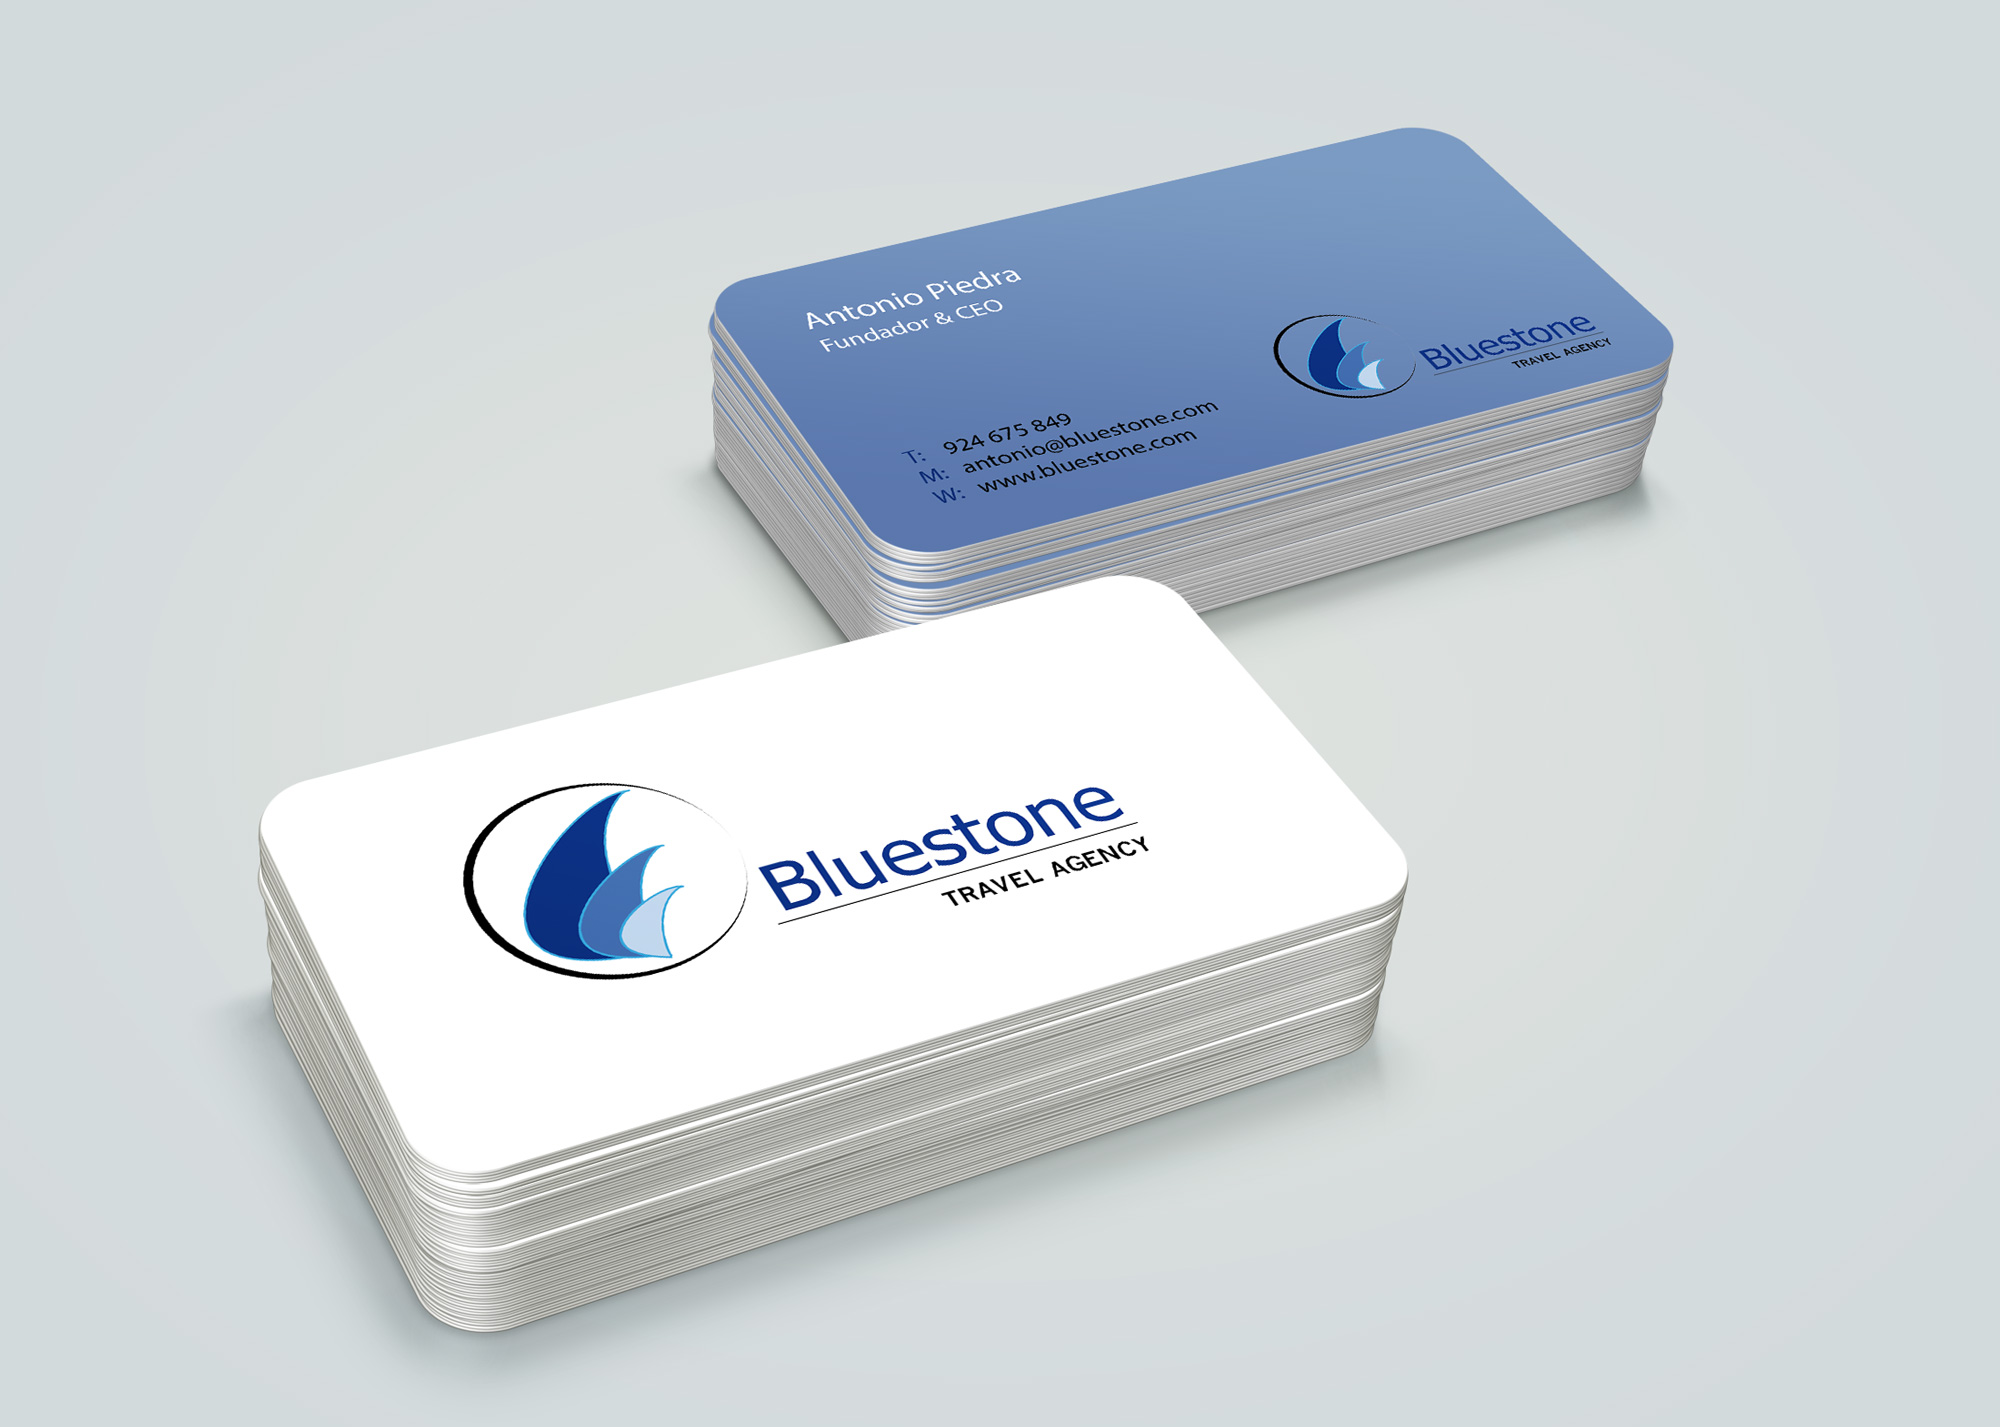 Bluestone business cards